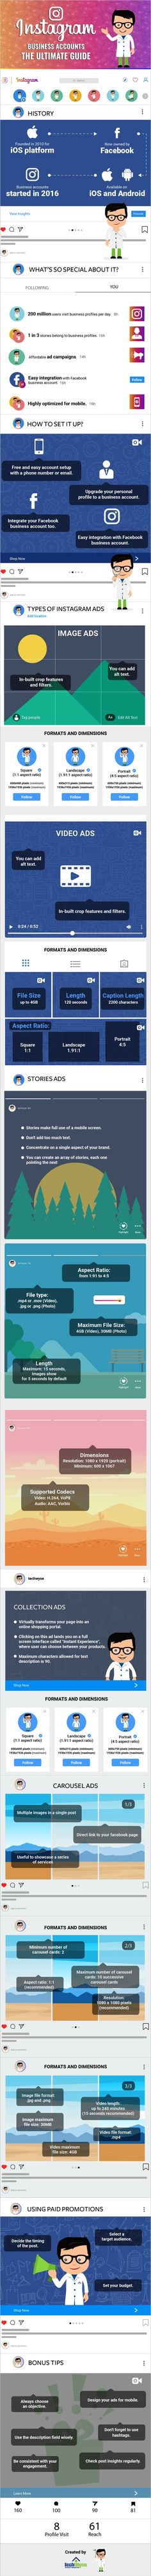 Everything You Need to Know About Instagram Business Accounts [Infographic] | Social Media Today Instagram Marketing Tips, Instagram Tips, Instagram Story, Instagram Images, Business Writing, Business Pages, Social Media Tips, Social Media Marketing, Marketing Ideas